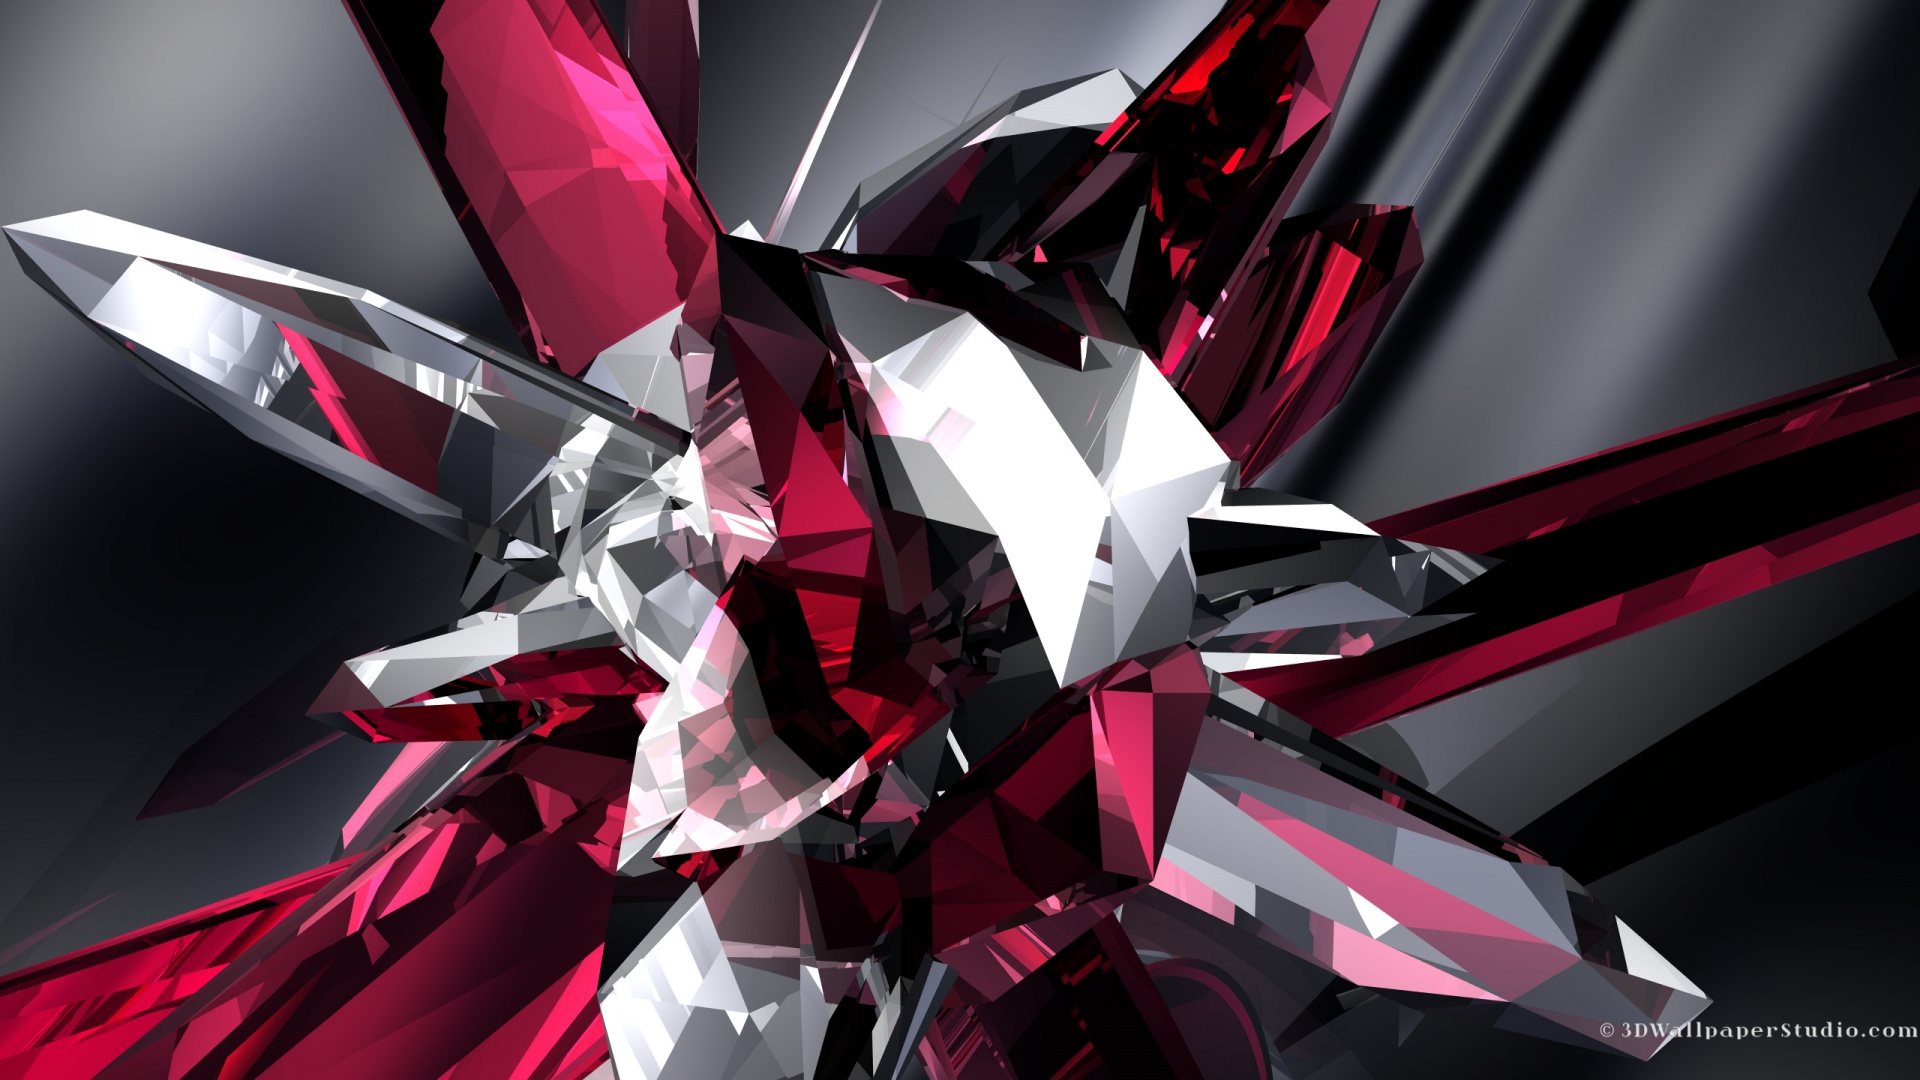 3D Wallpaper 3D crystal abstract 1920 x 1080 1920x1080